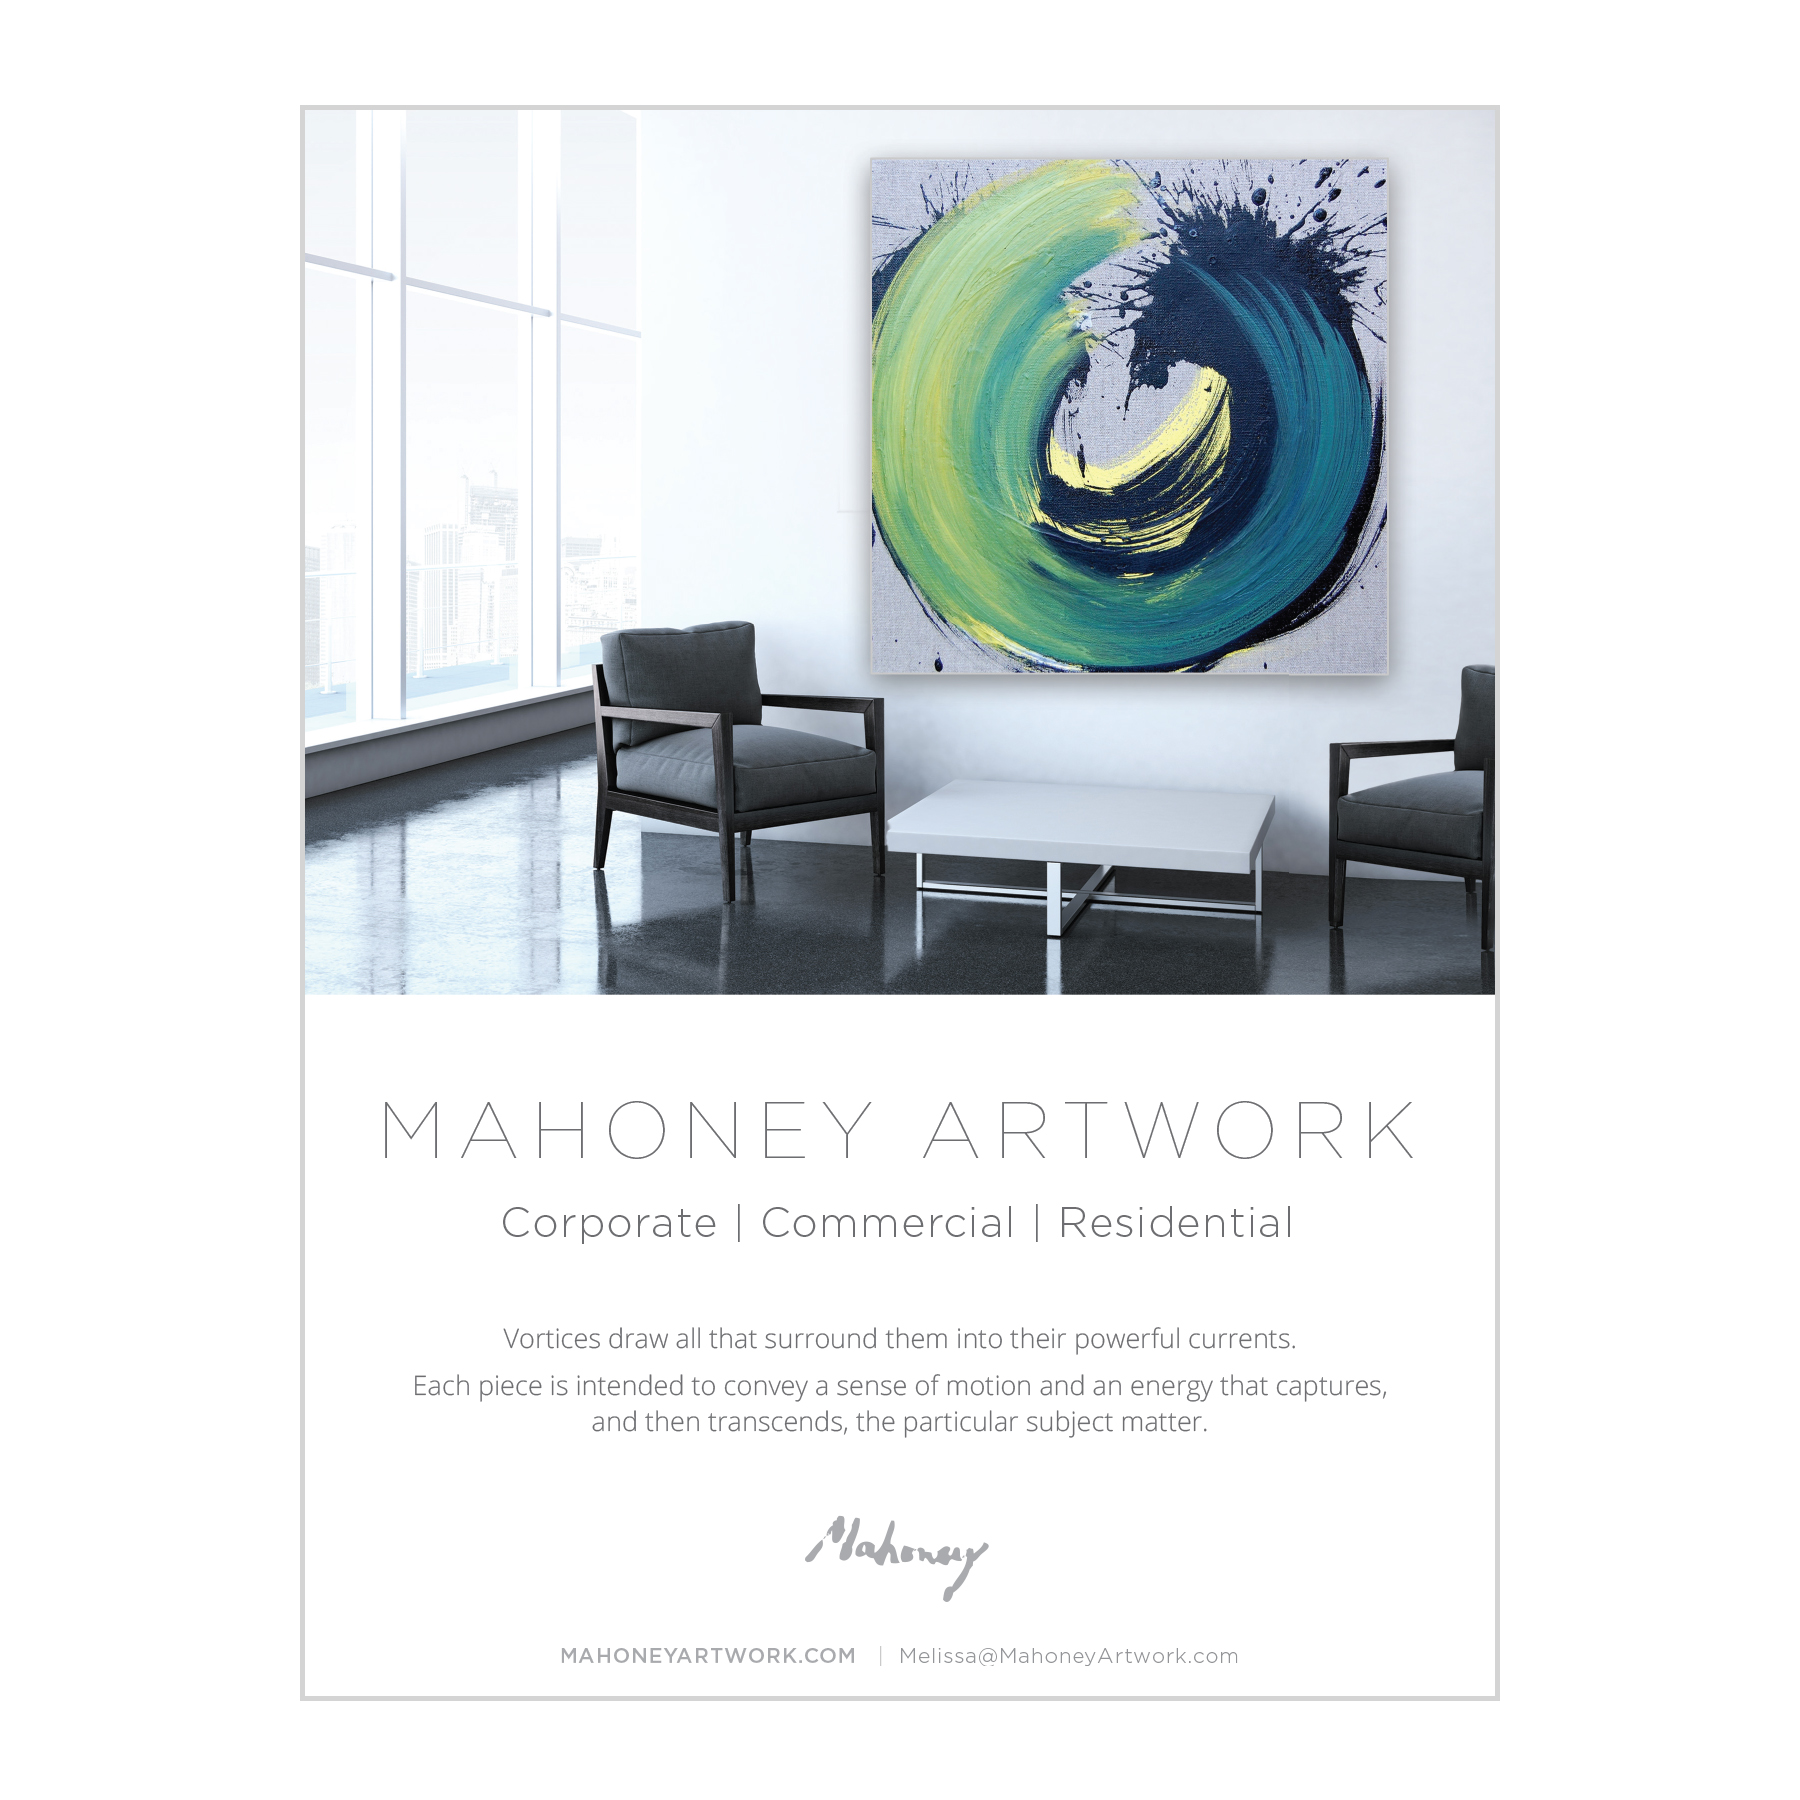 Mahoney_Artwork_Retail_Sheet_3-1.jpg